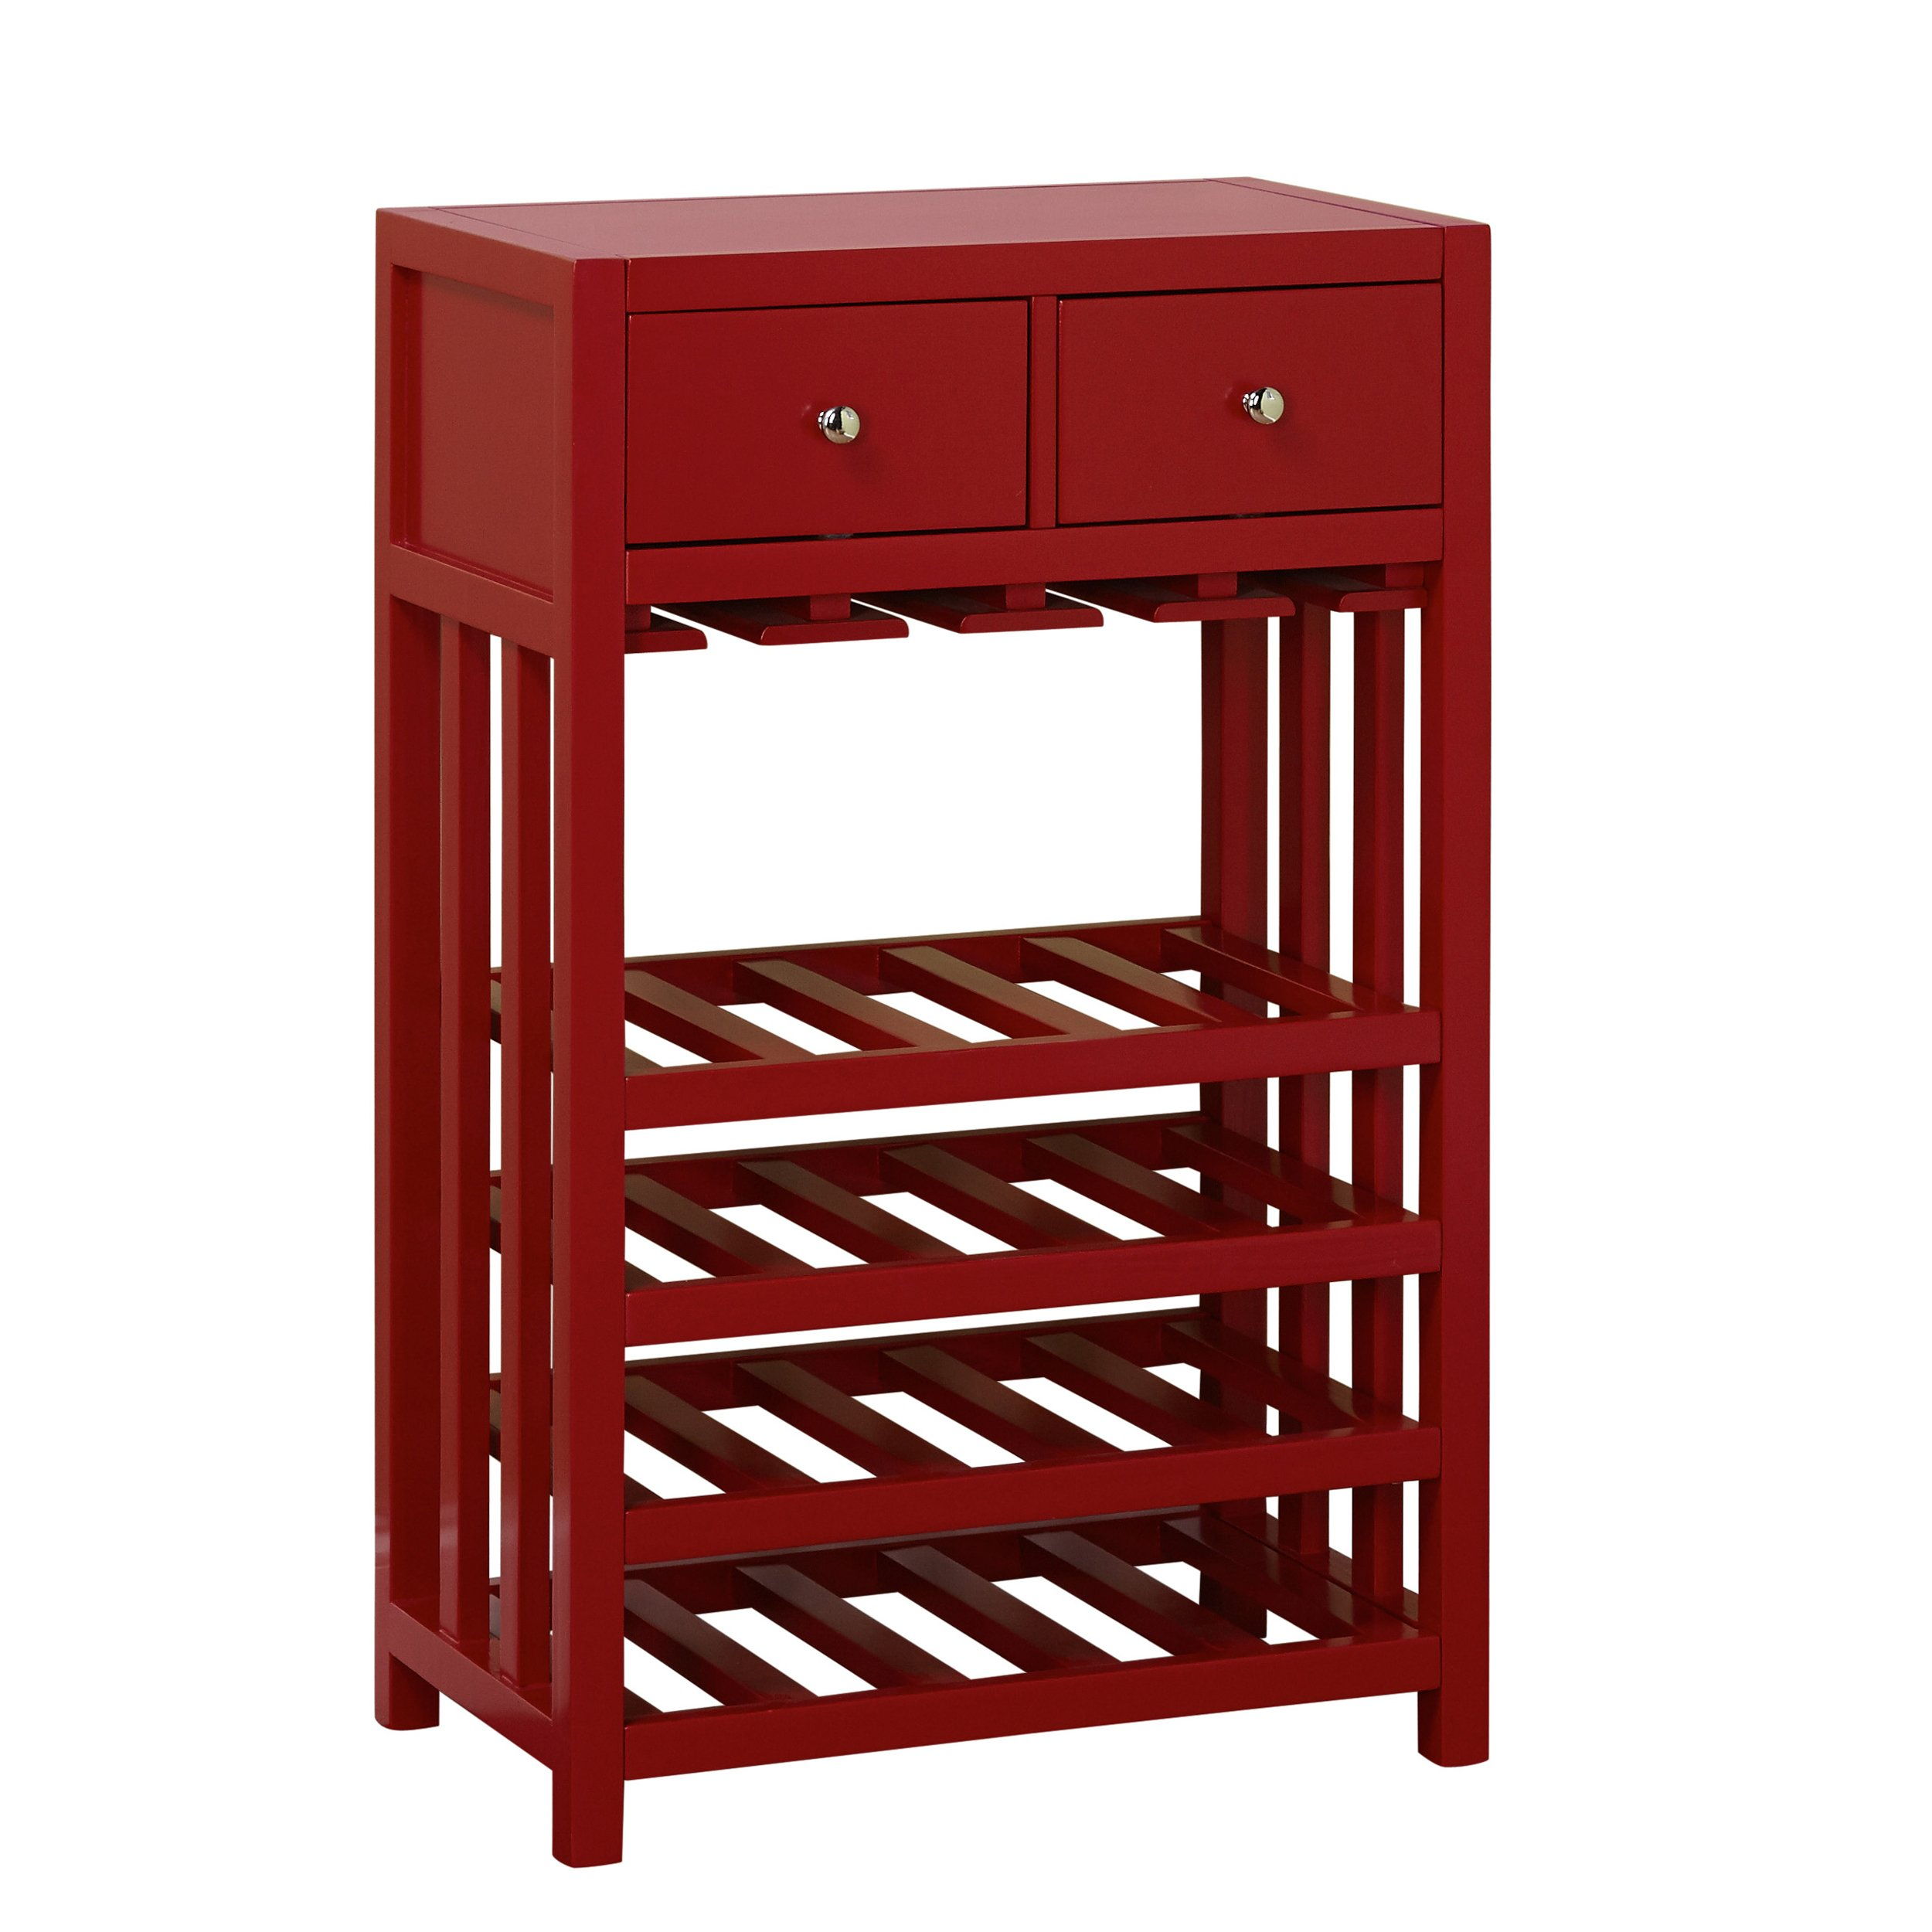 Target Marketing Systems Free Standing Wine Storage Tower Console with 2 Drawers, Red by Target Marketing Systems